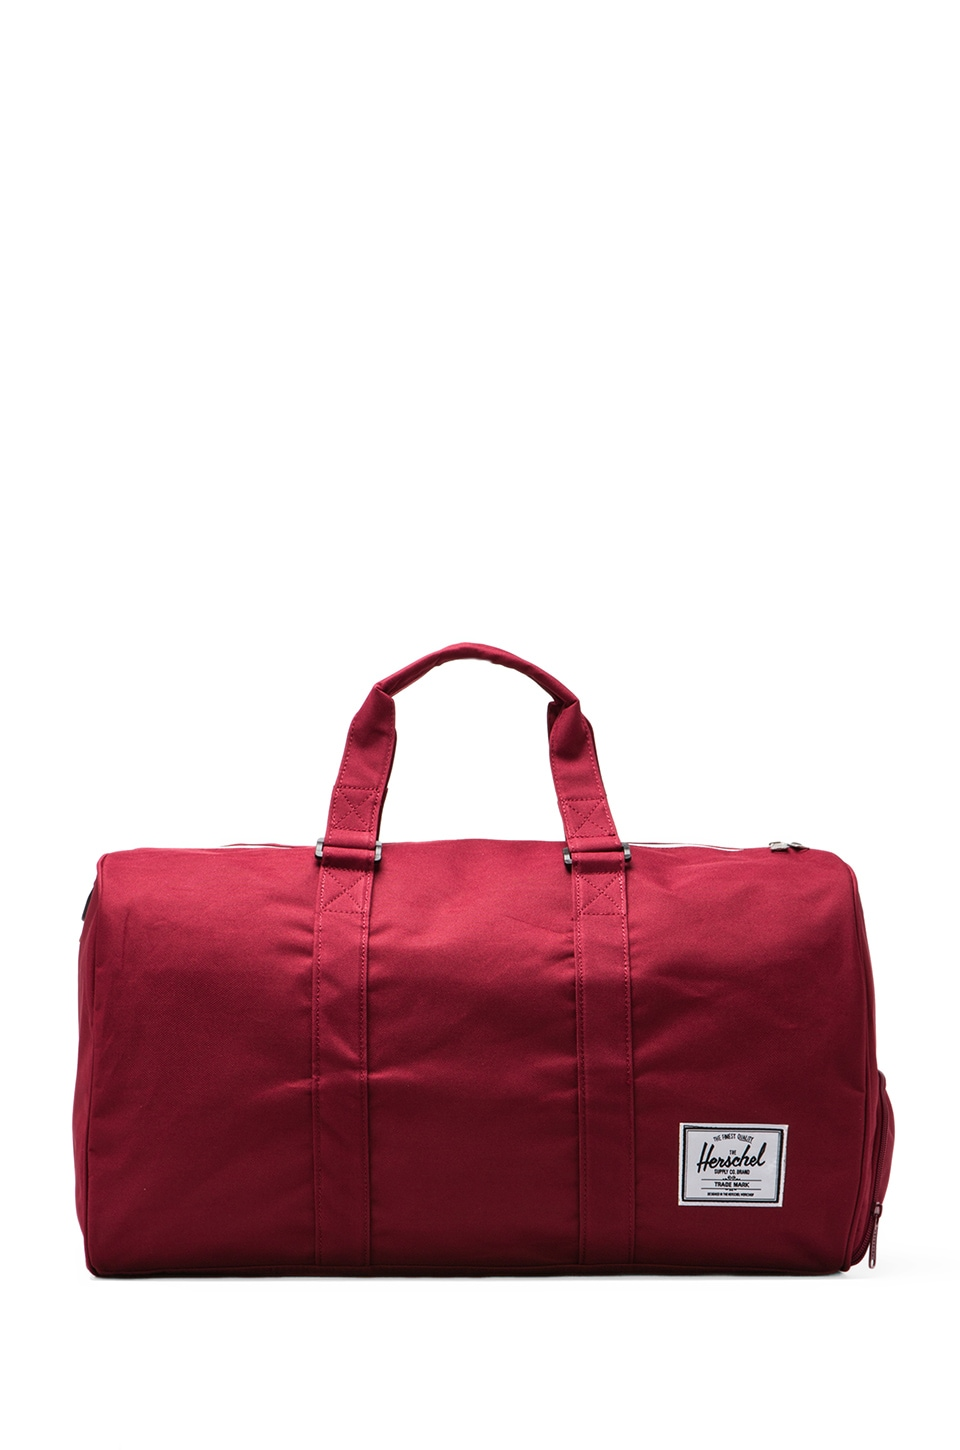 Herschel Supply Co. Sac de voyage Novel en Bordeaux